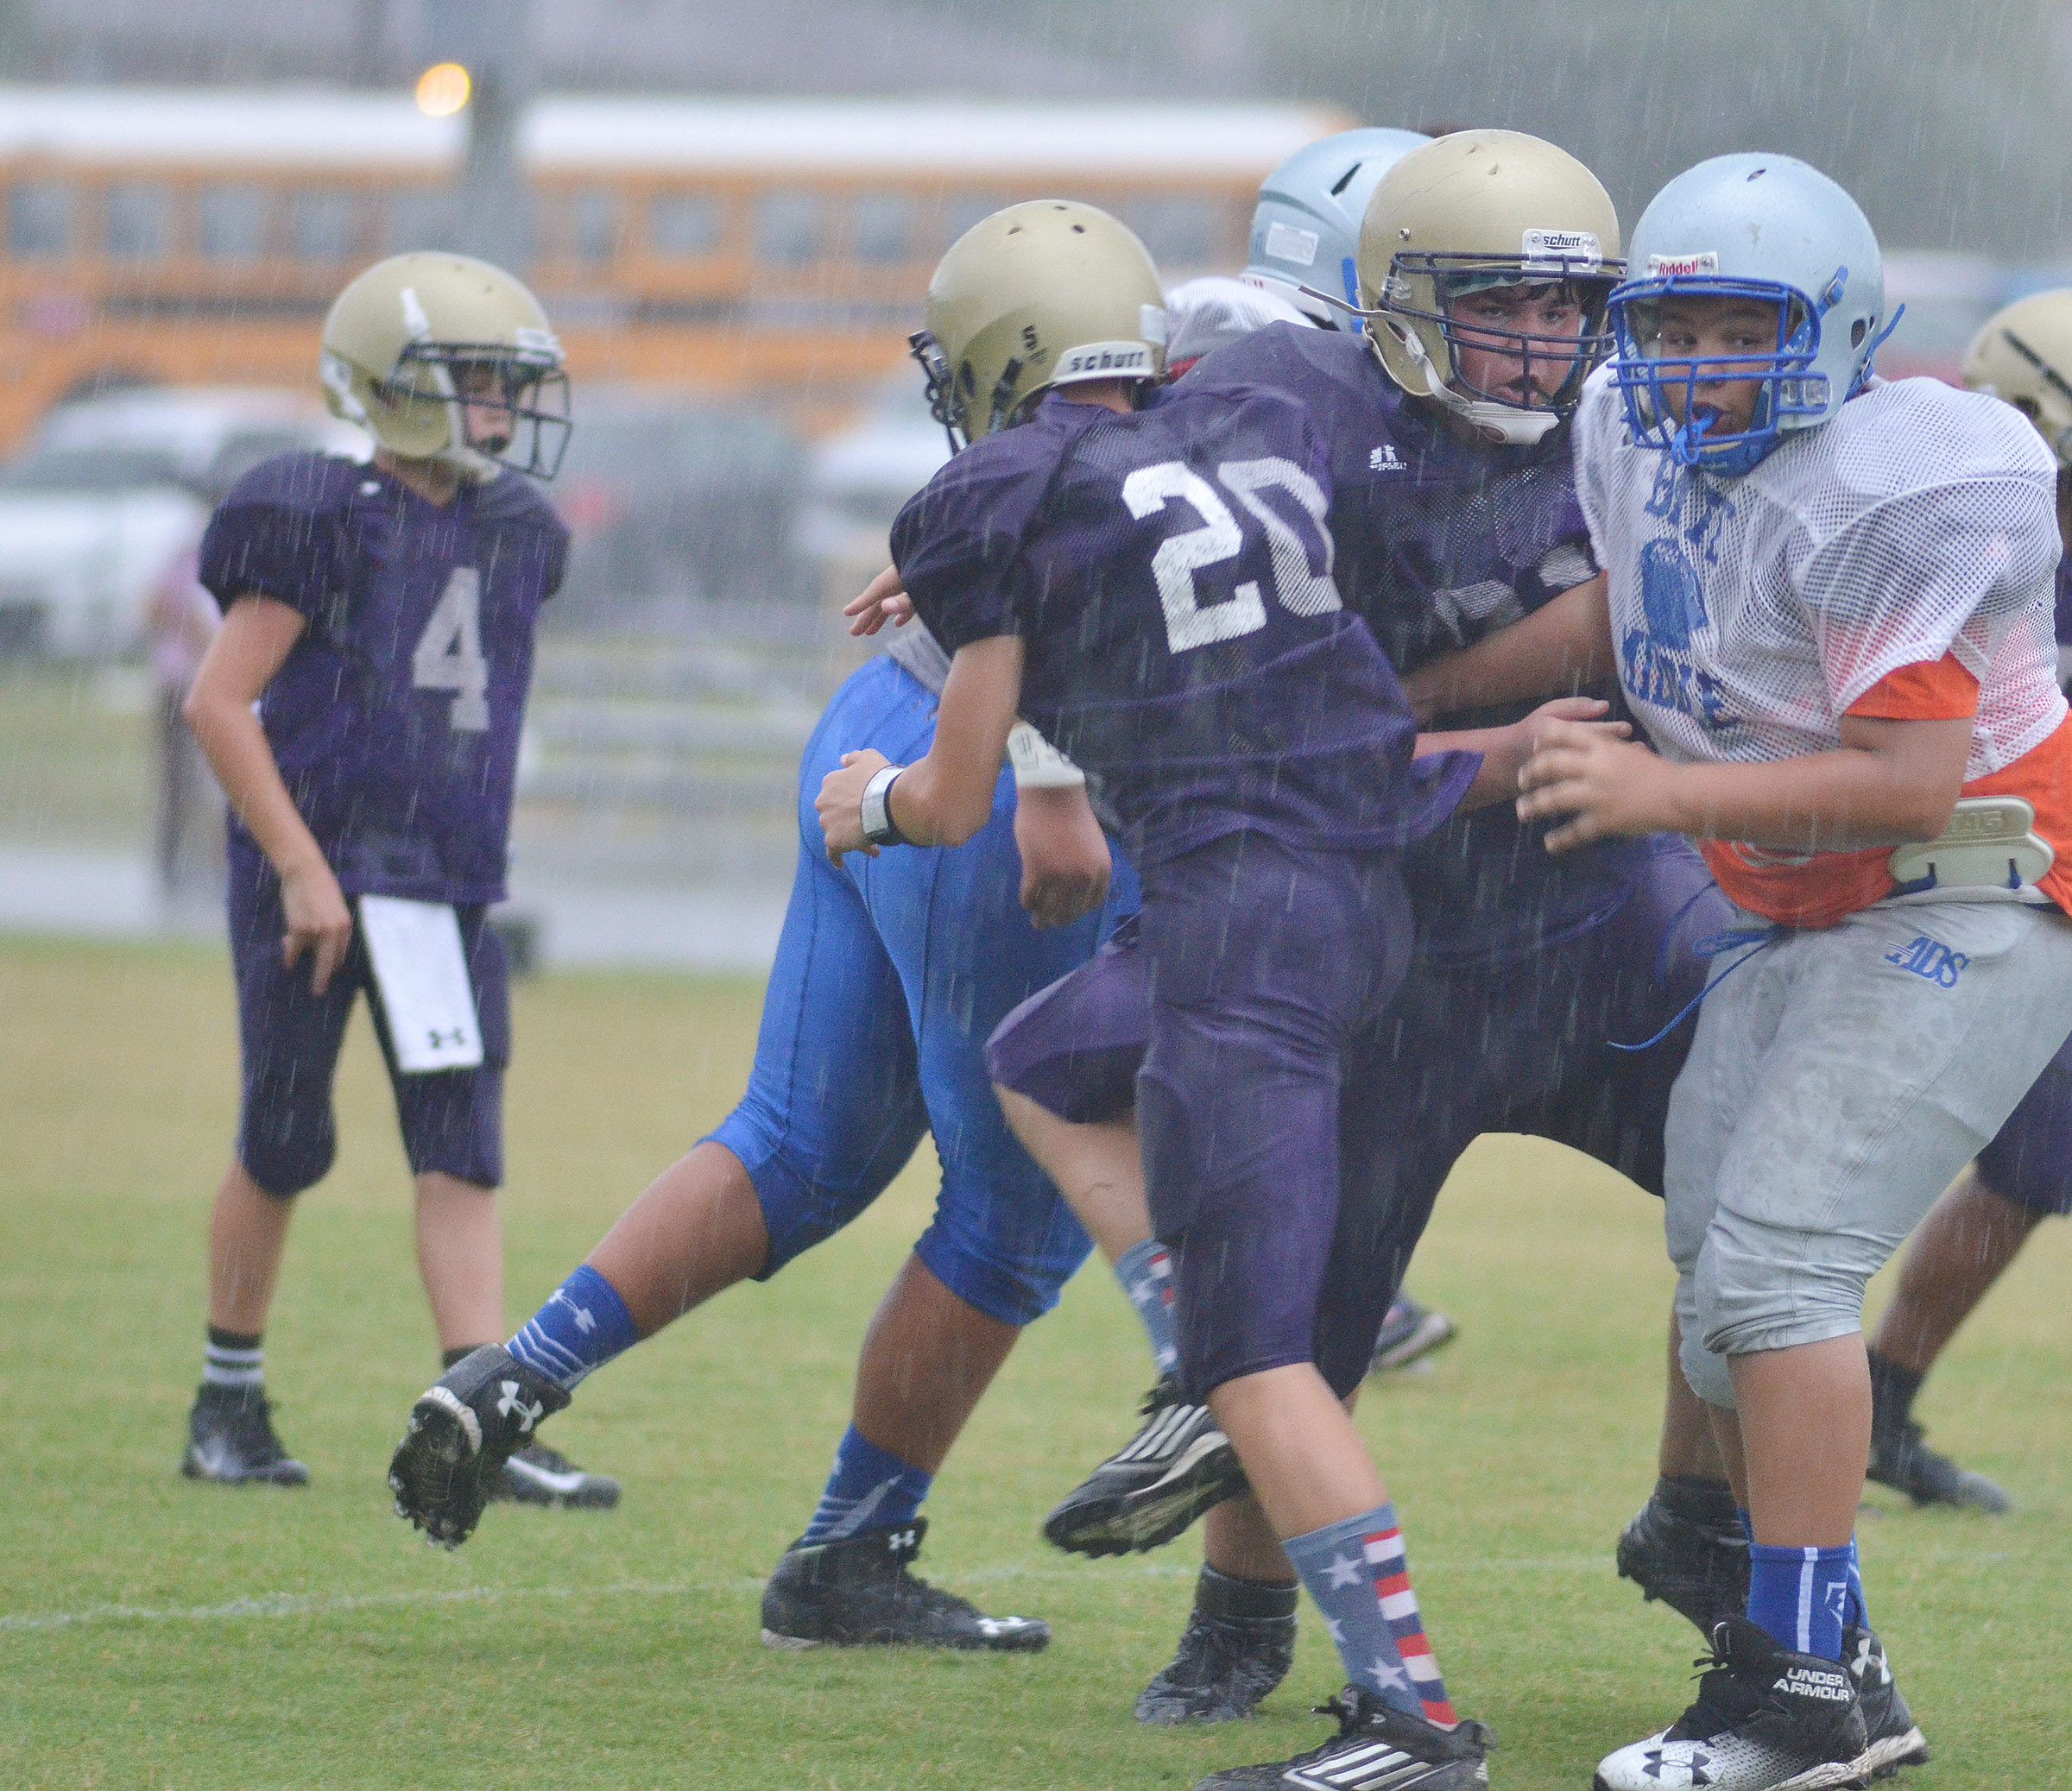 CMS seventh-grader Damon Johnson, center, and eighth-grader Logan Rakes tackle.